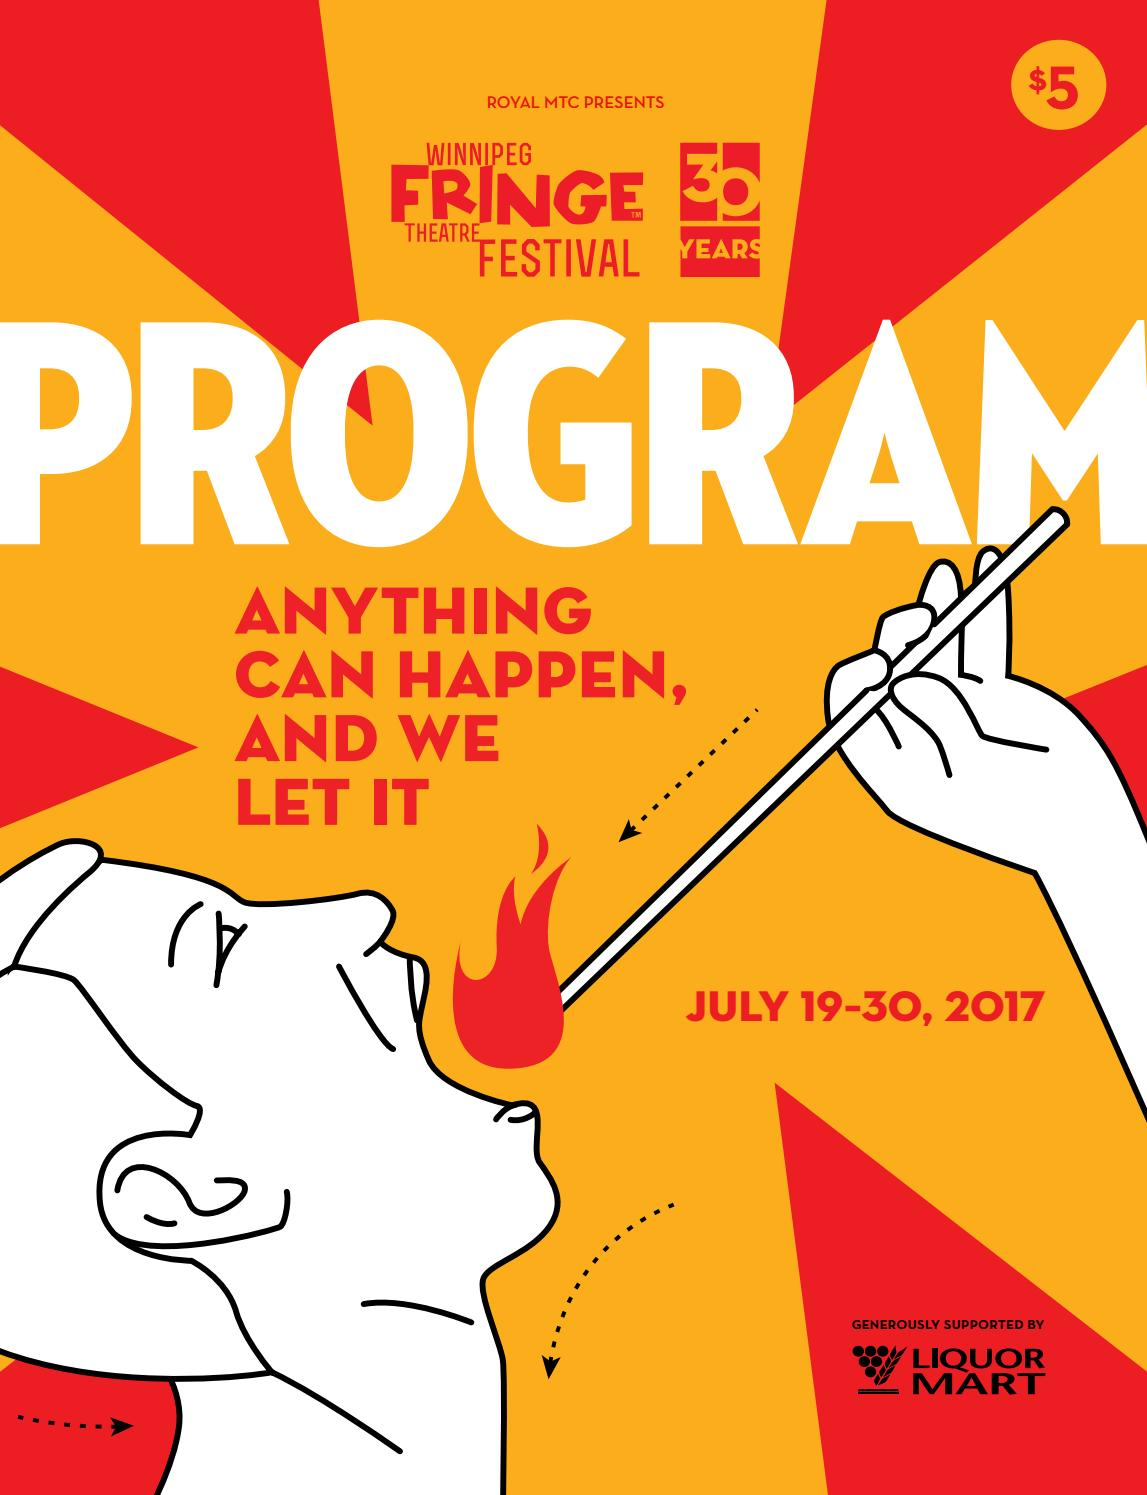 37bd8b976 Winnipeg Fringe Theatre Festival program guide 2017 by Royal Manitoba  Theatre Centre - issuu